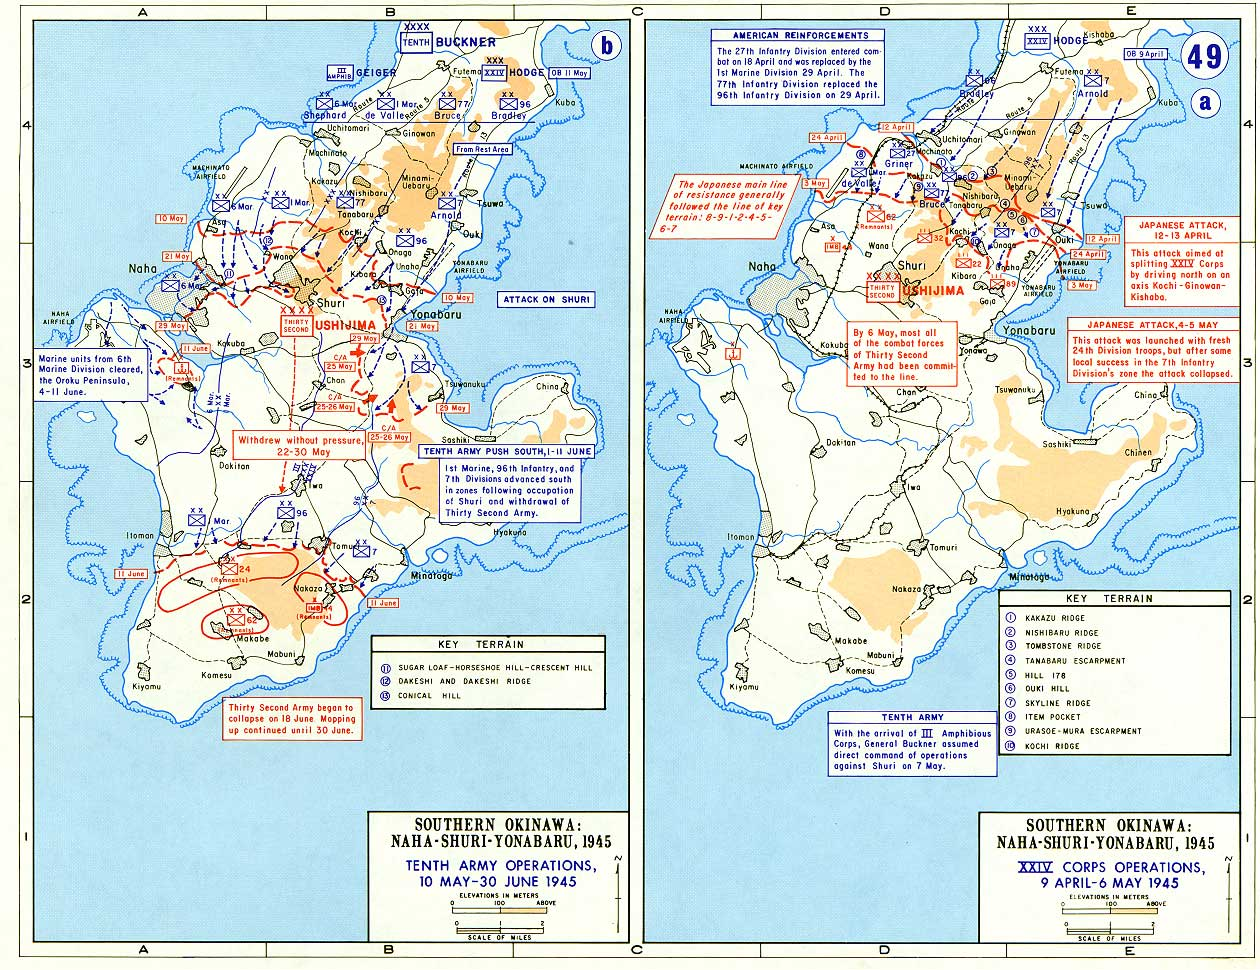 Ivo jima maps historical resources about the second world war invasion of iwo jima and okinawa 9 april 30 june 1945 gumiabroncs Images